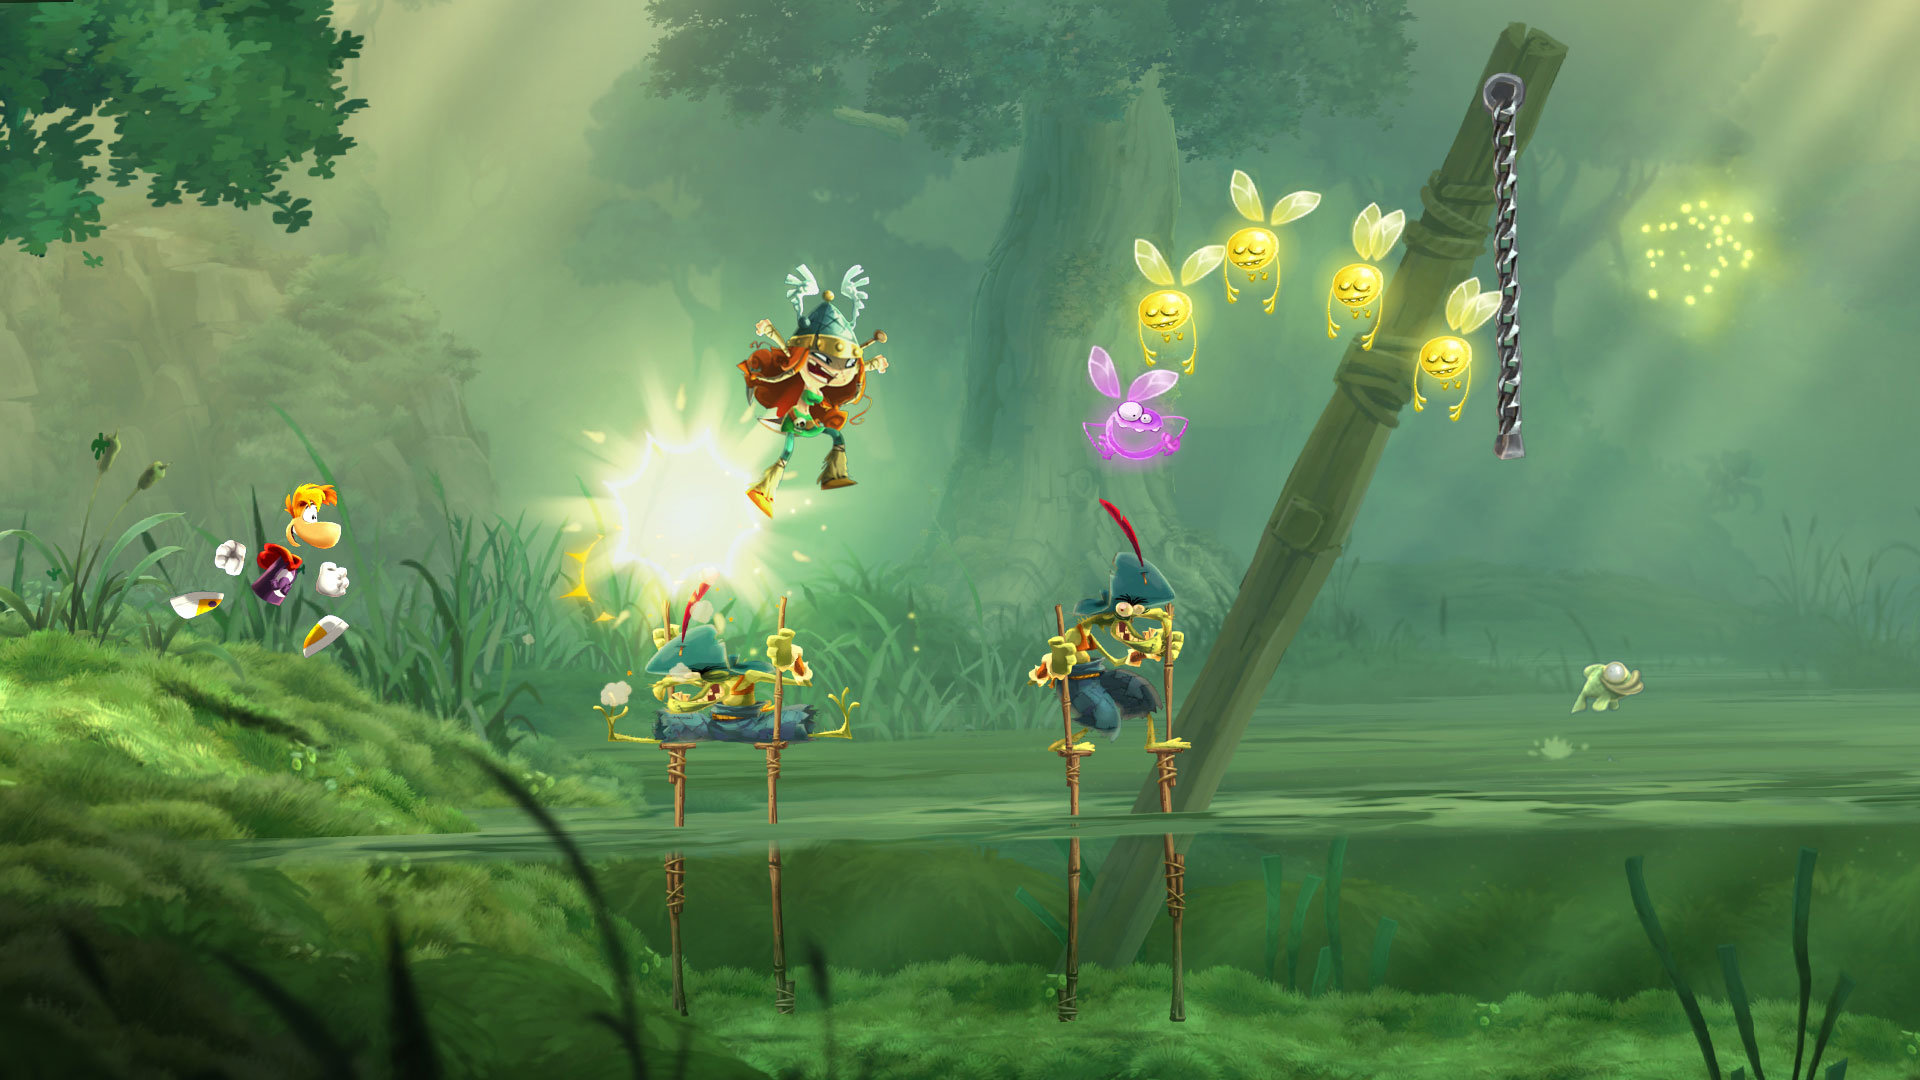 High resolution Rayman Legends hd 1920x1080 background ID:26544 for PC